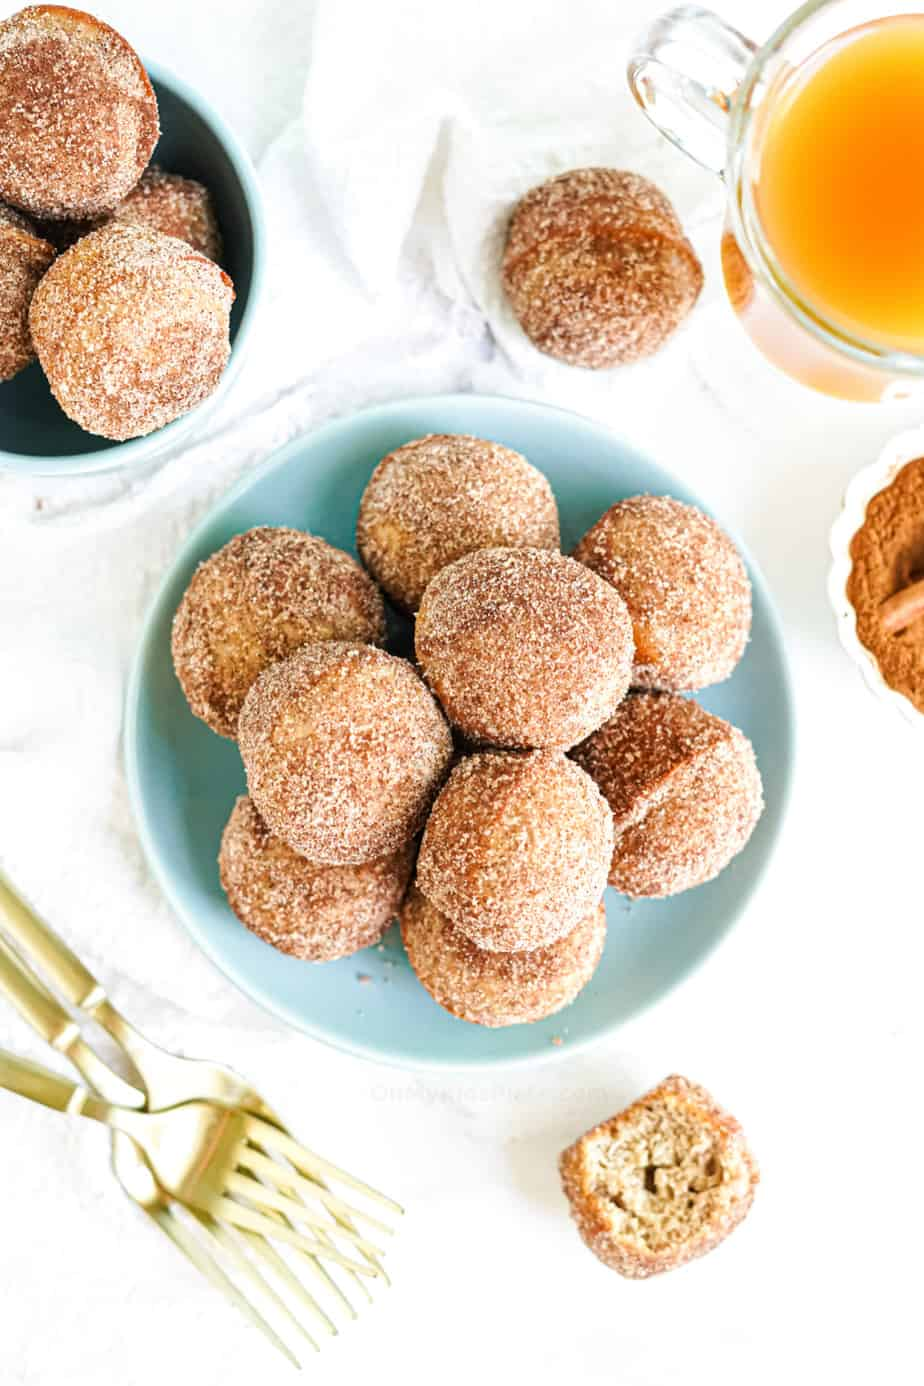 Plate of doughnut holes covered in cinnamon sugar from overhead with a glass of apple cider, forks and a second bowl of doughnut holes nearby on the table